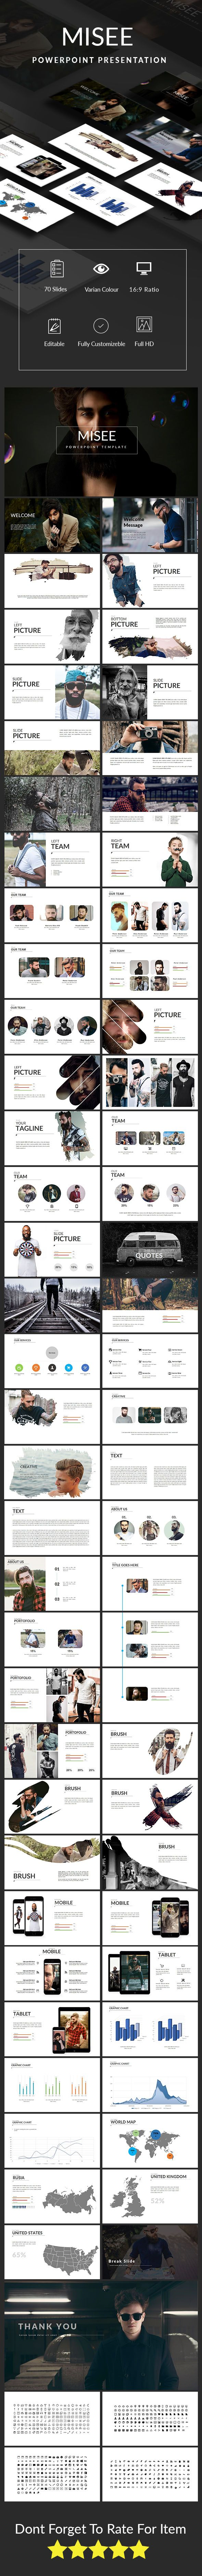 342 best powerpoint images on pinterest | presentation templates, Presentation templates